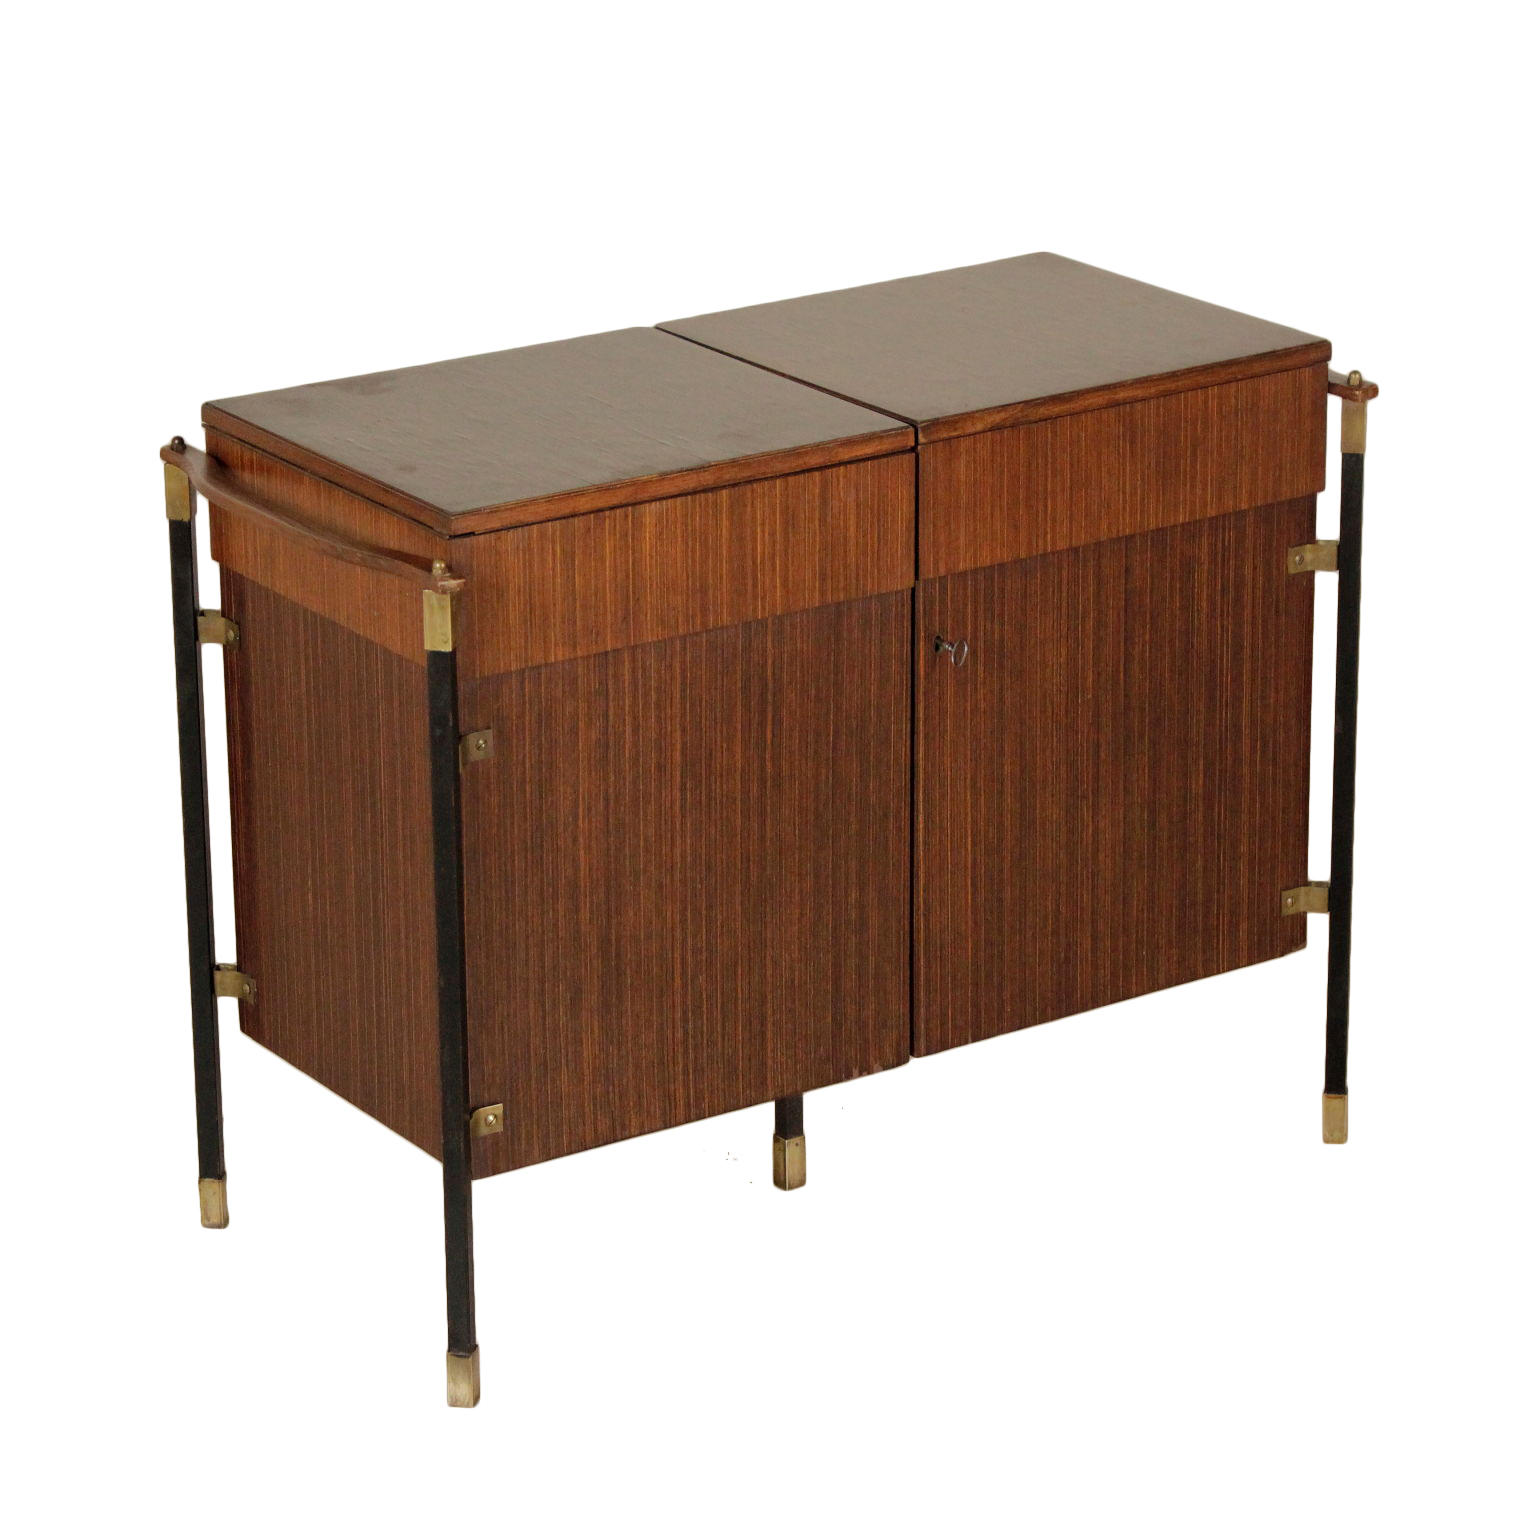 mobile bar aus den 60 jahren m bel modernes design. Black Bedroom Furniture Sets. Home Design Ideas